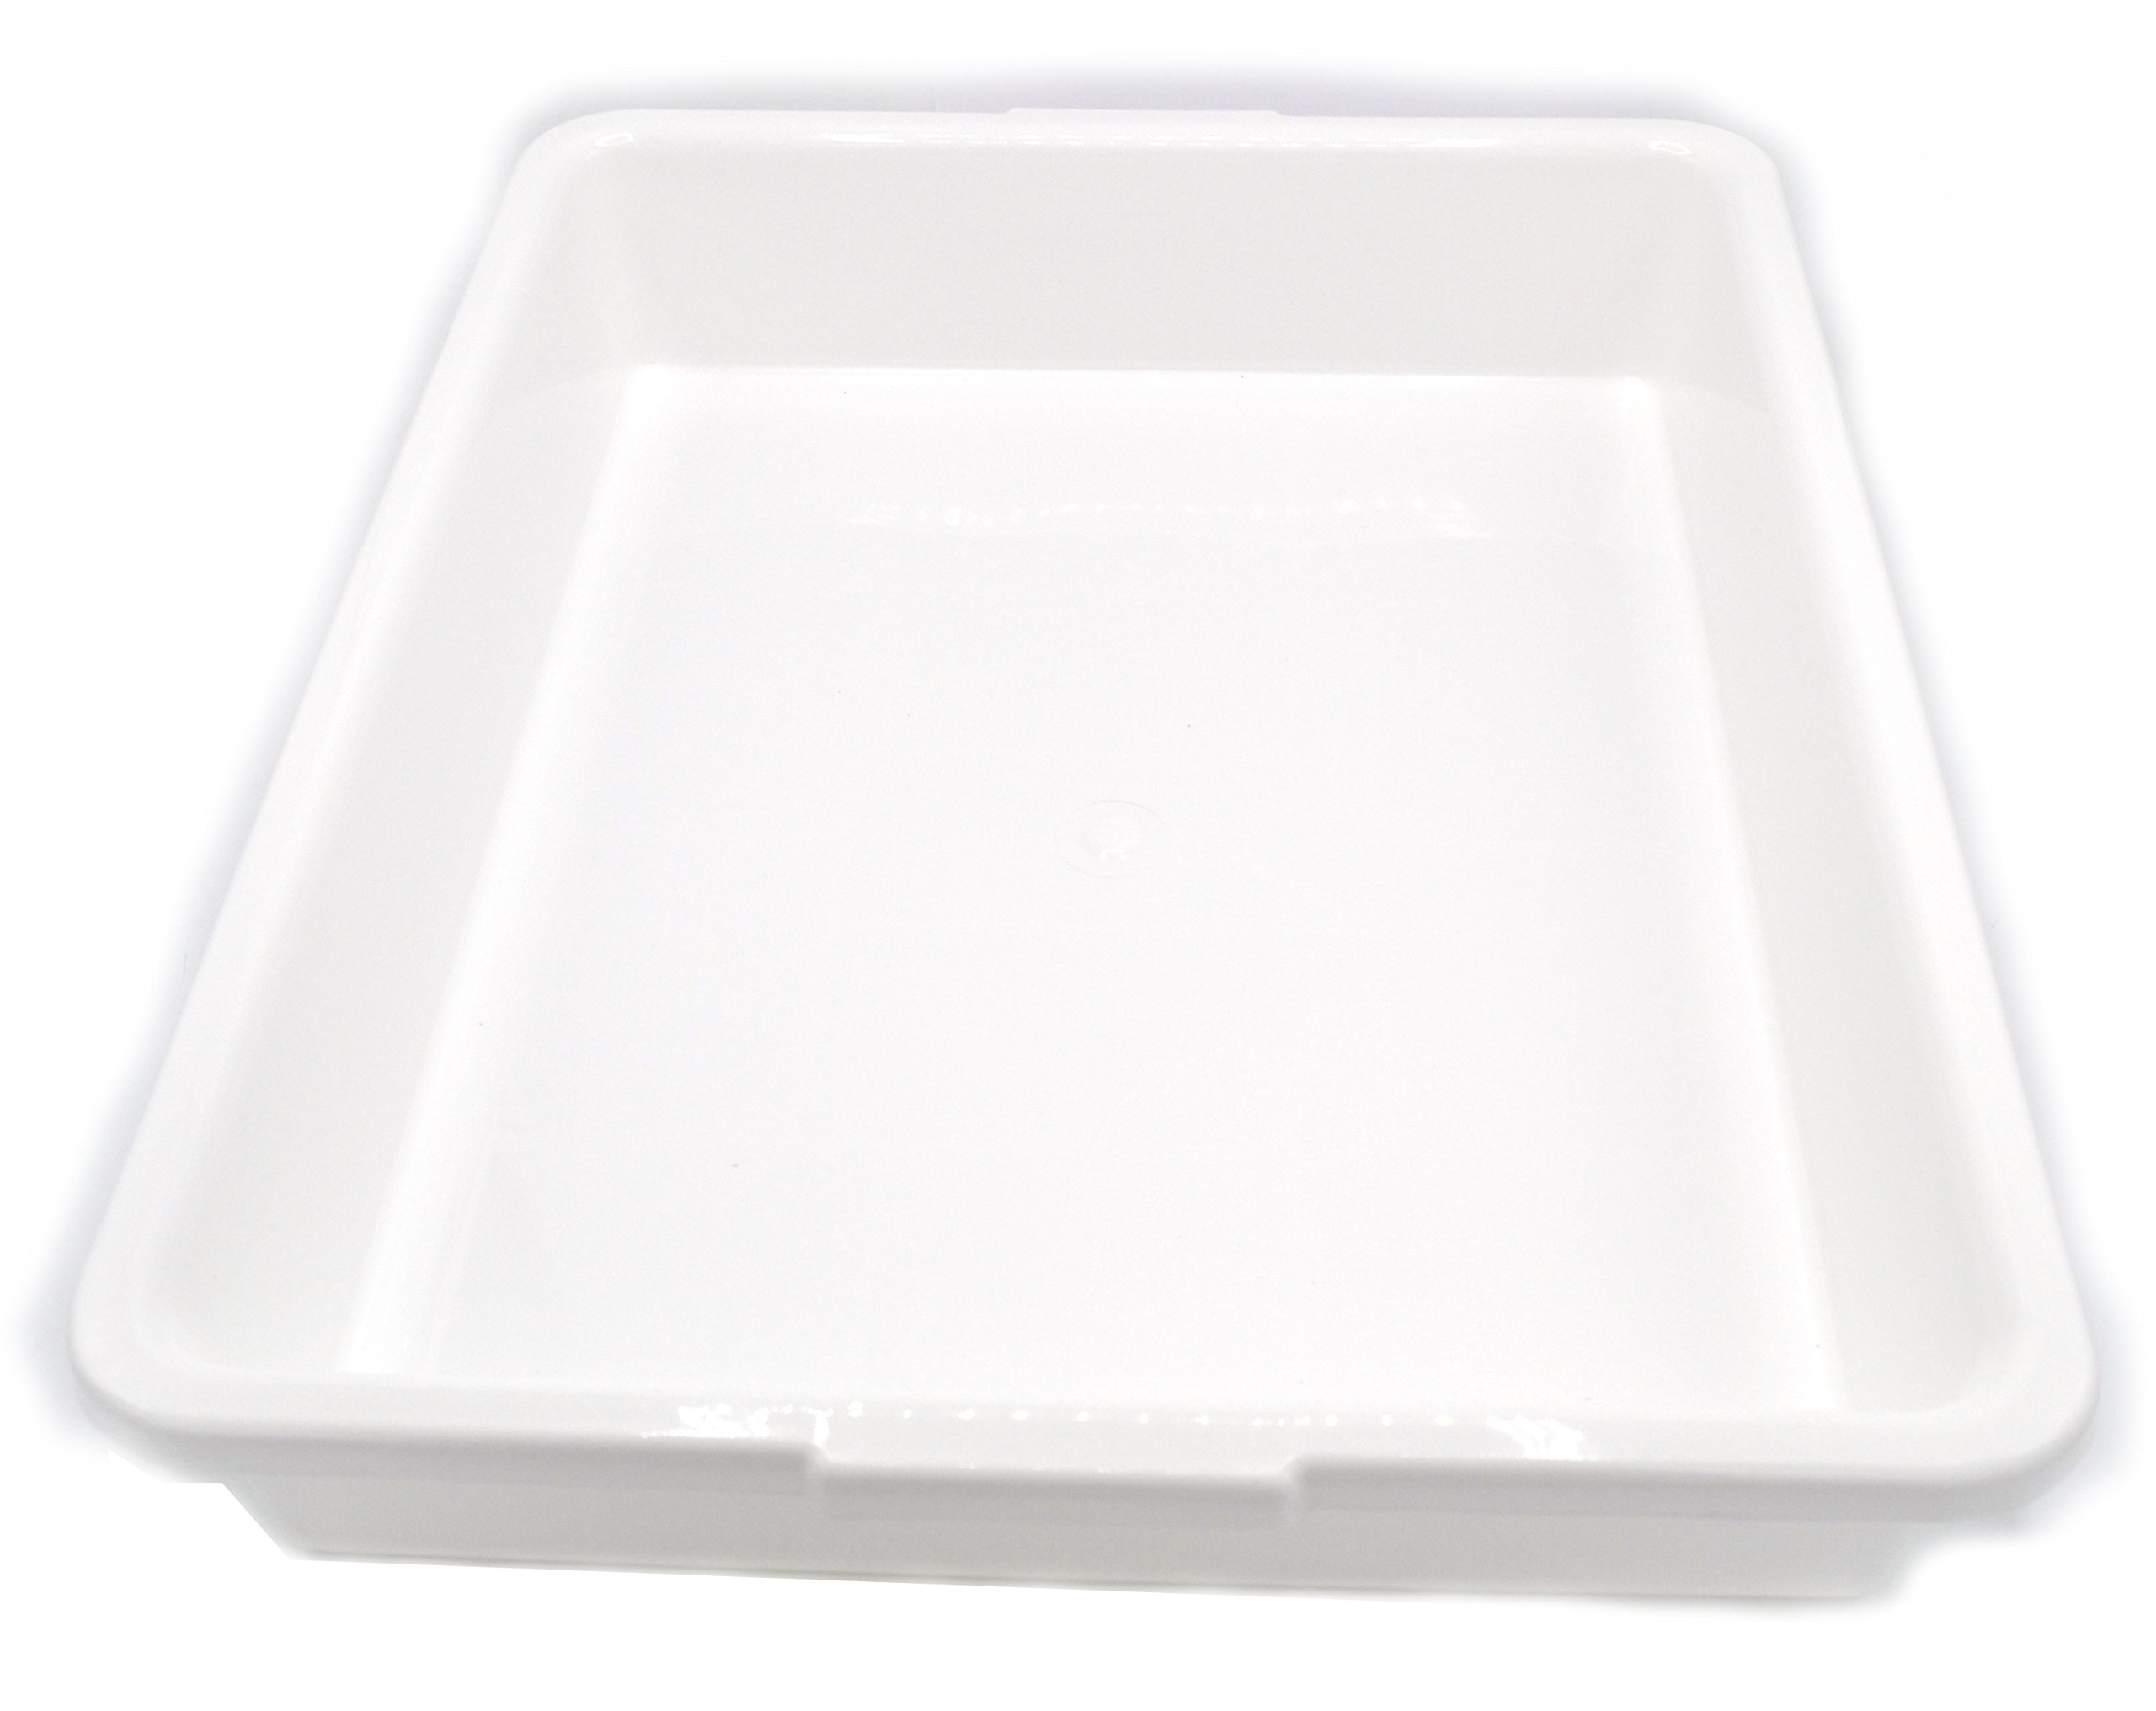 Laboratory Tray - 17.5 x 13.5 x 3 Inches - Polypropylene Plastic